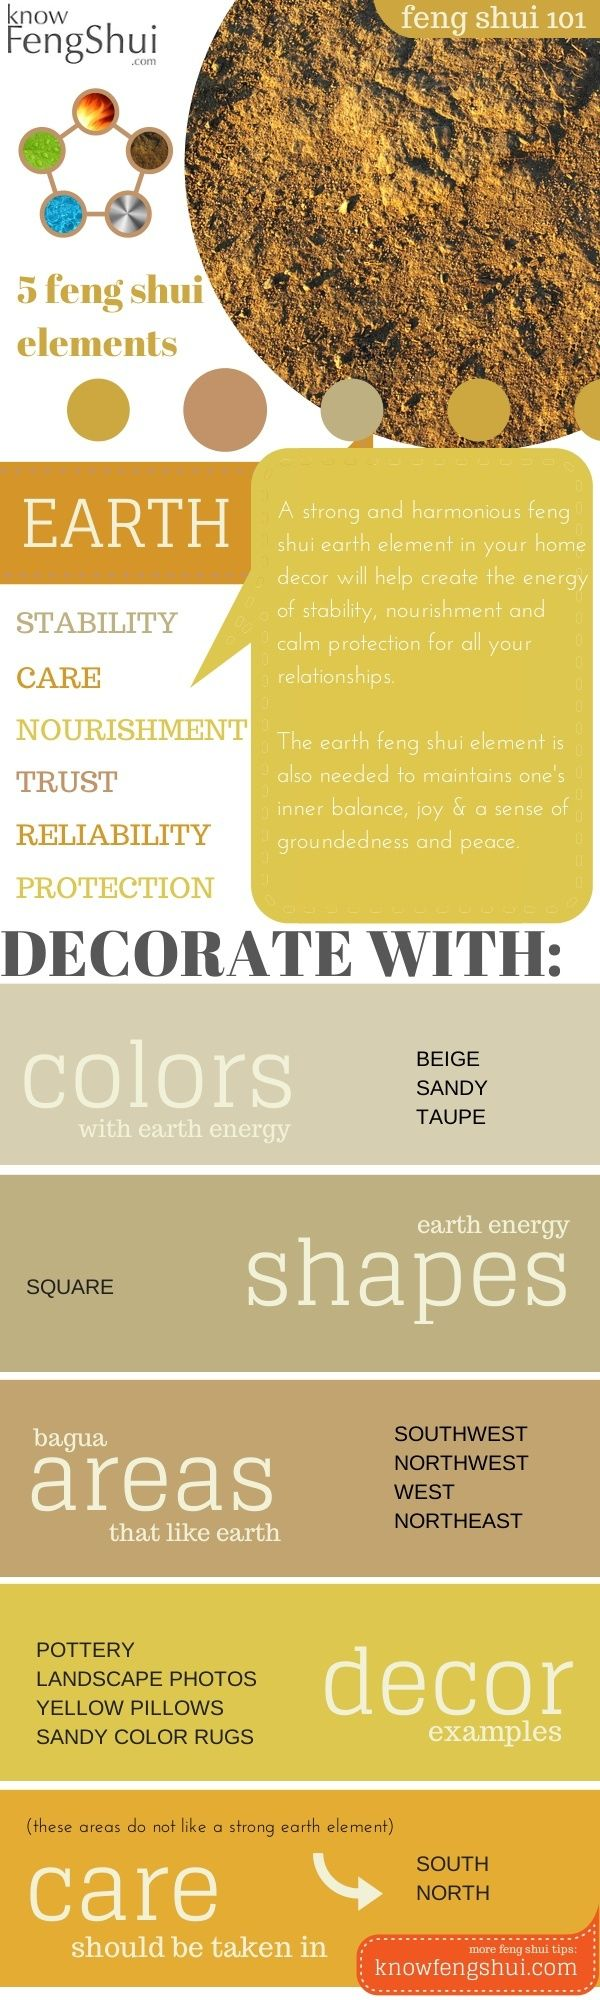 Which colors represent the earth deloufleur decor for Modern feng shui